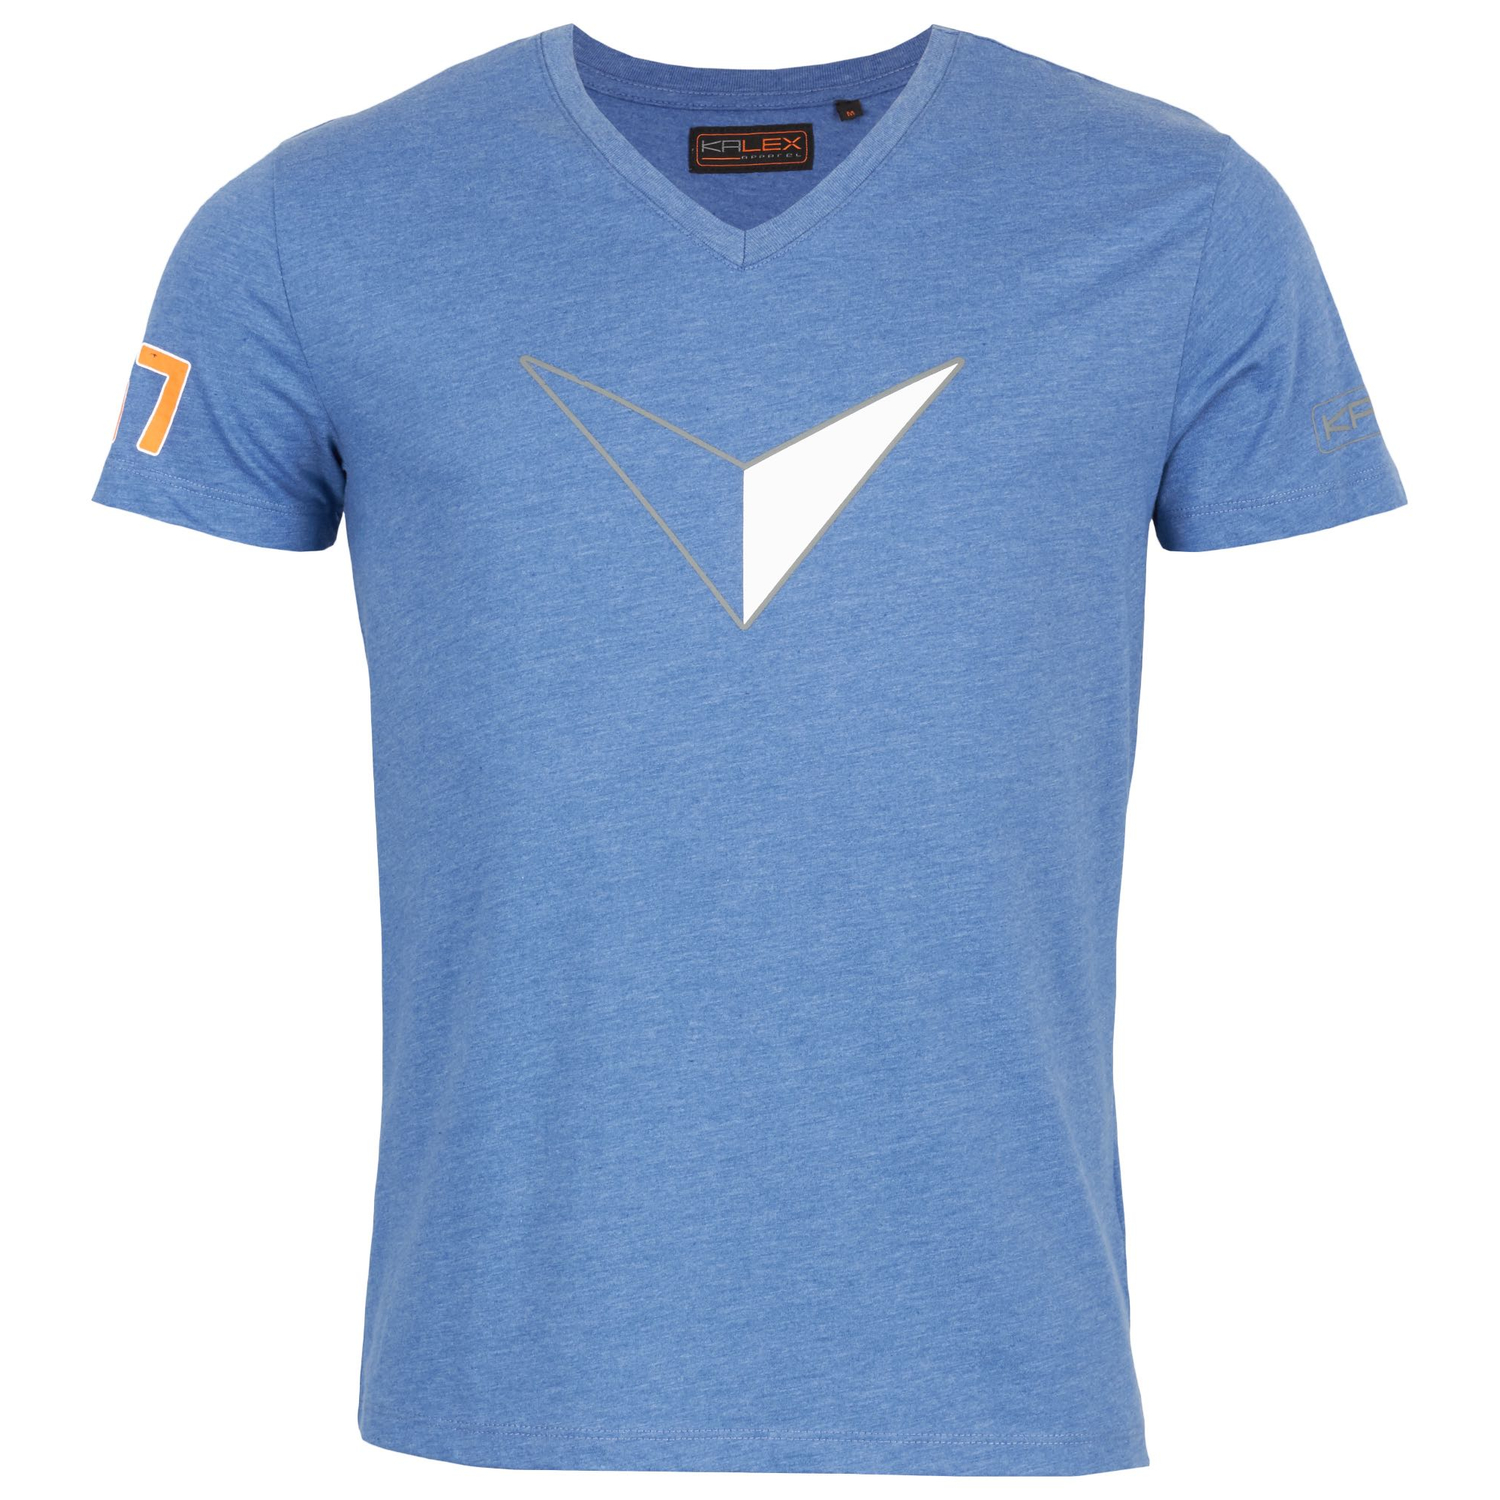 T-SHIRT BIG V DRUCK BLAU MELANGE XL